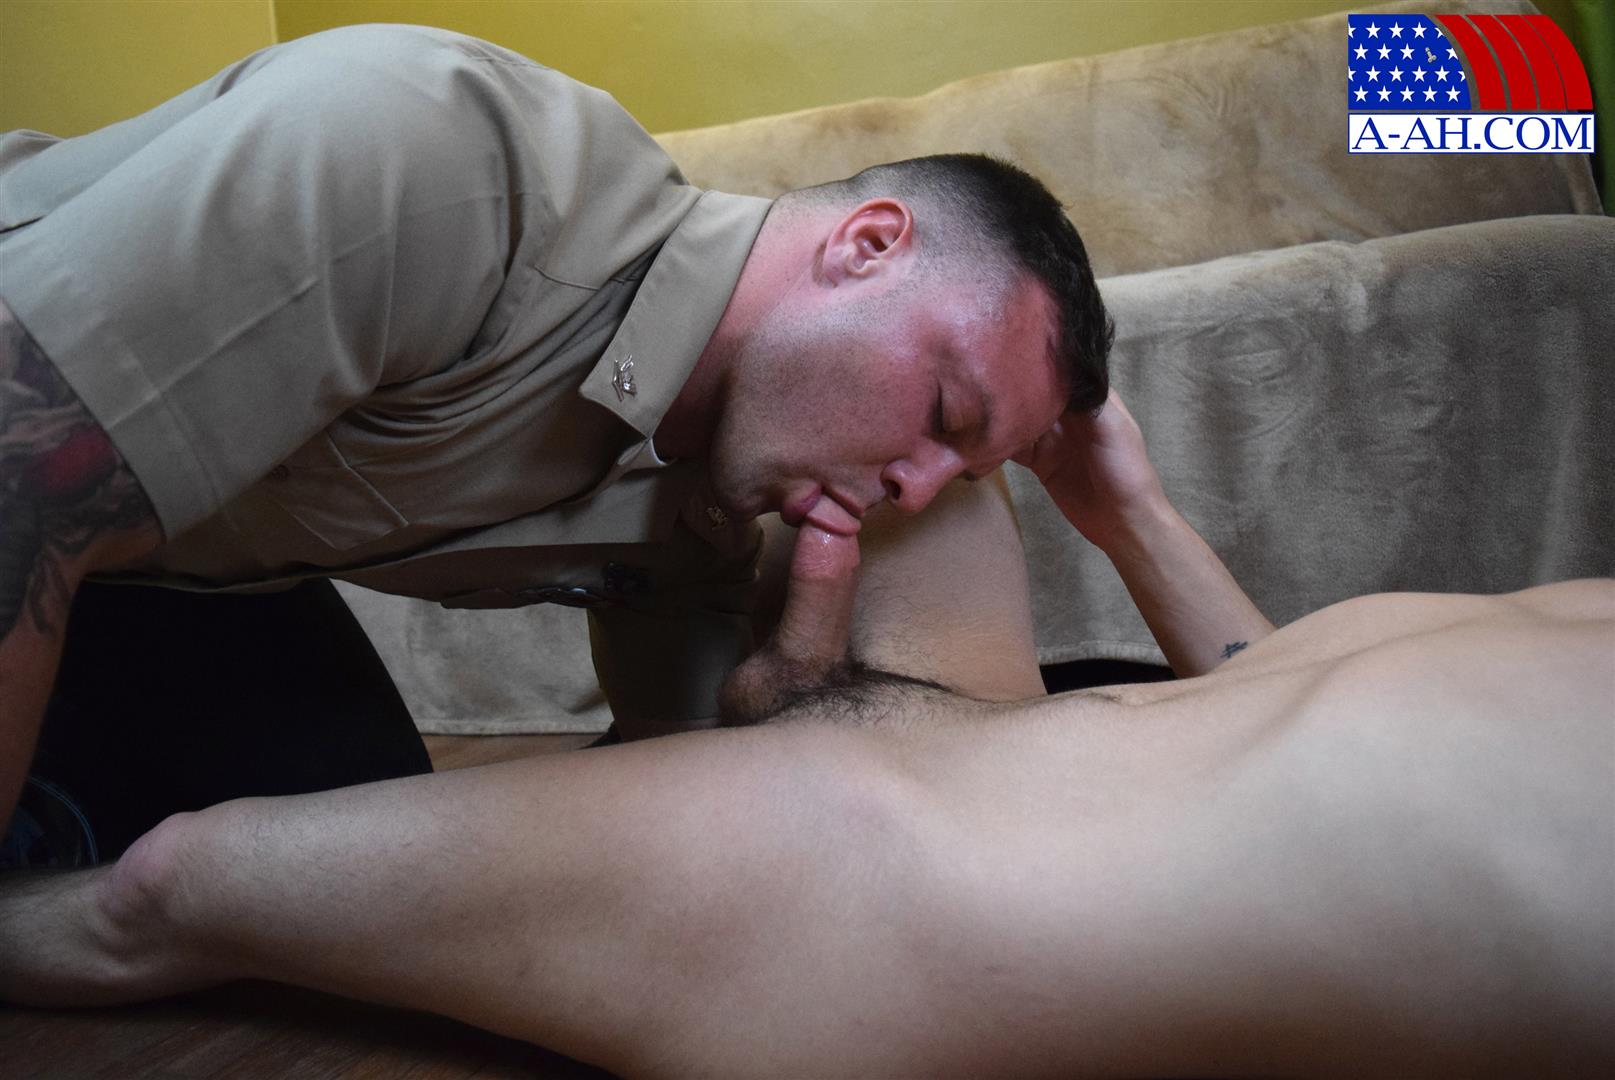 All-American-Heroes-Naked-Navy-Guy-Barebacking-a-Muscle-Twink-Amateur-Gay-Porn-04 Muscular Navy Corpsman Barebacking His Younger Workout Partner